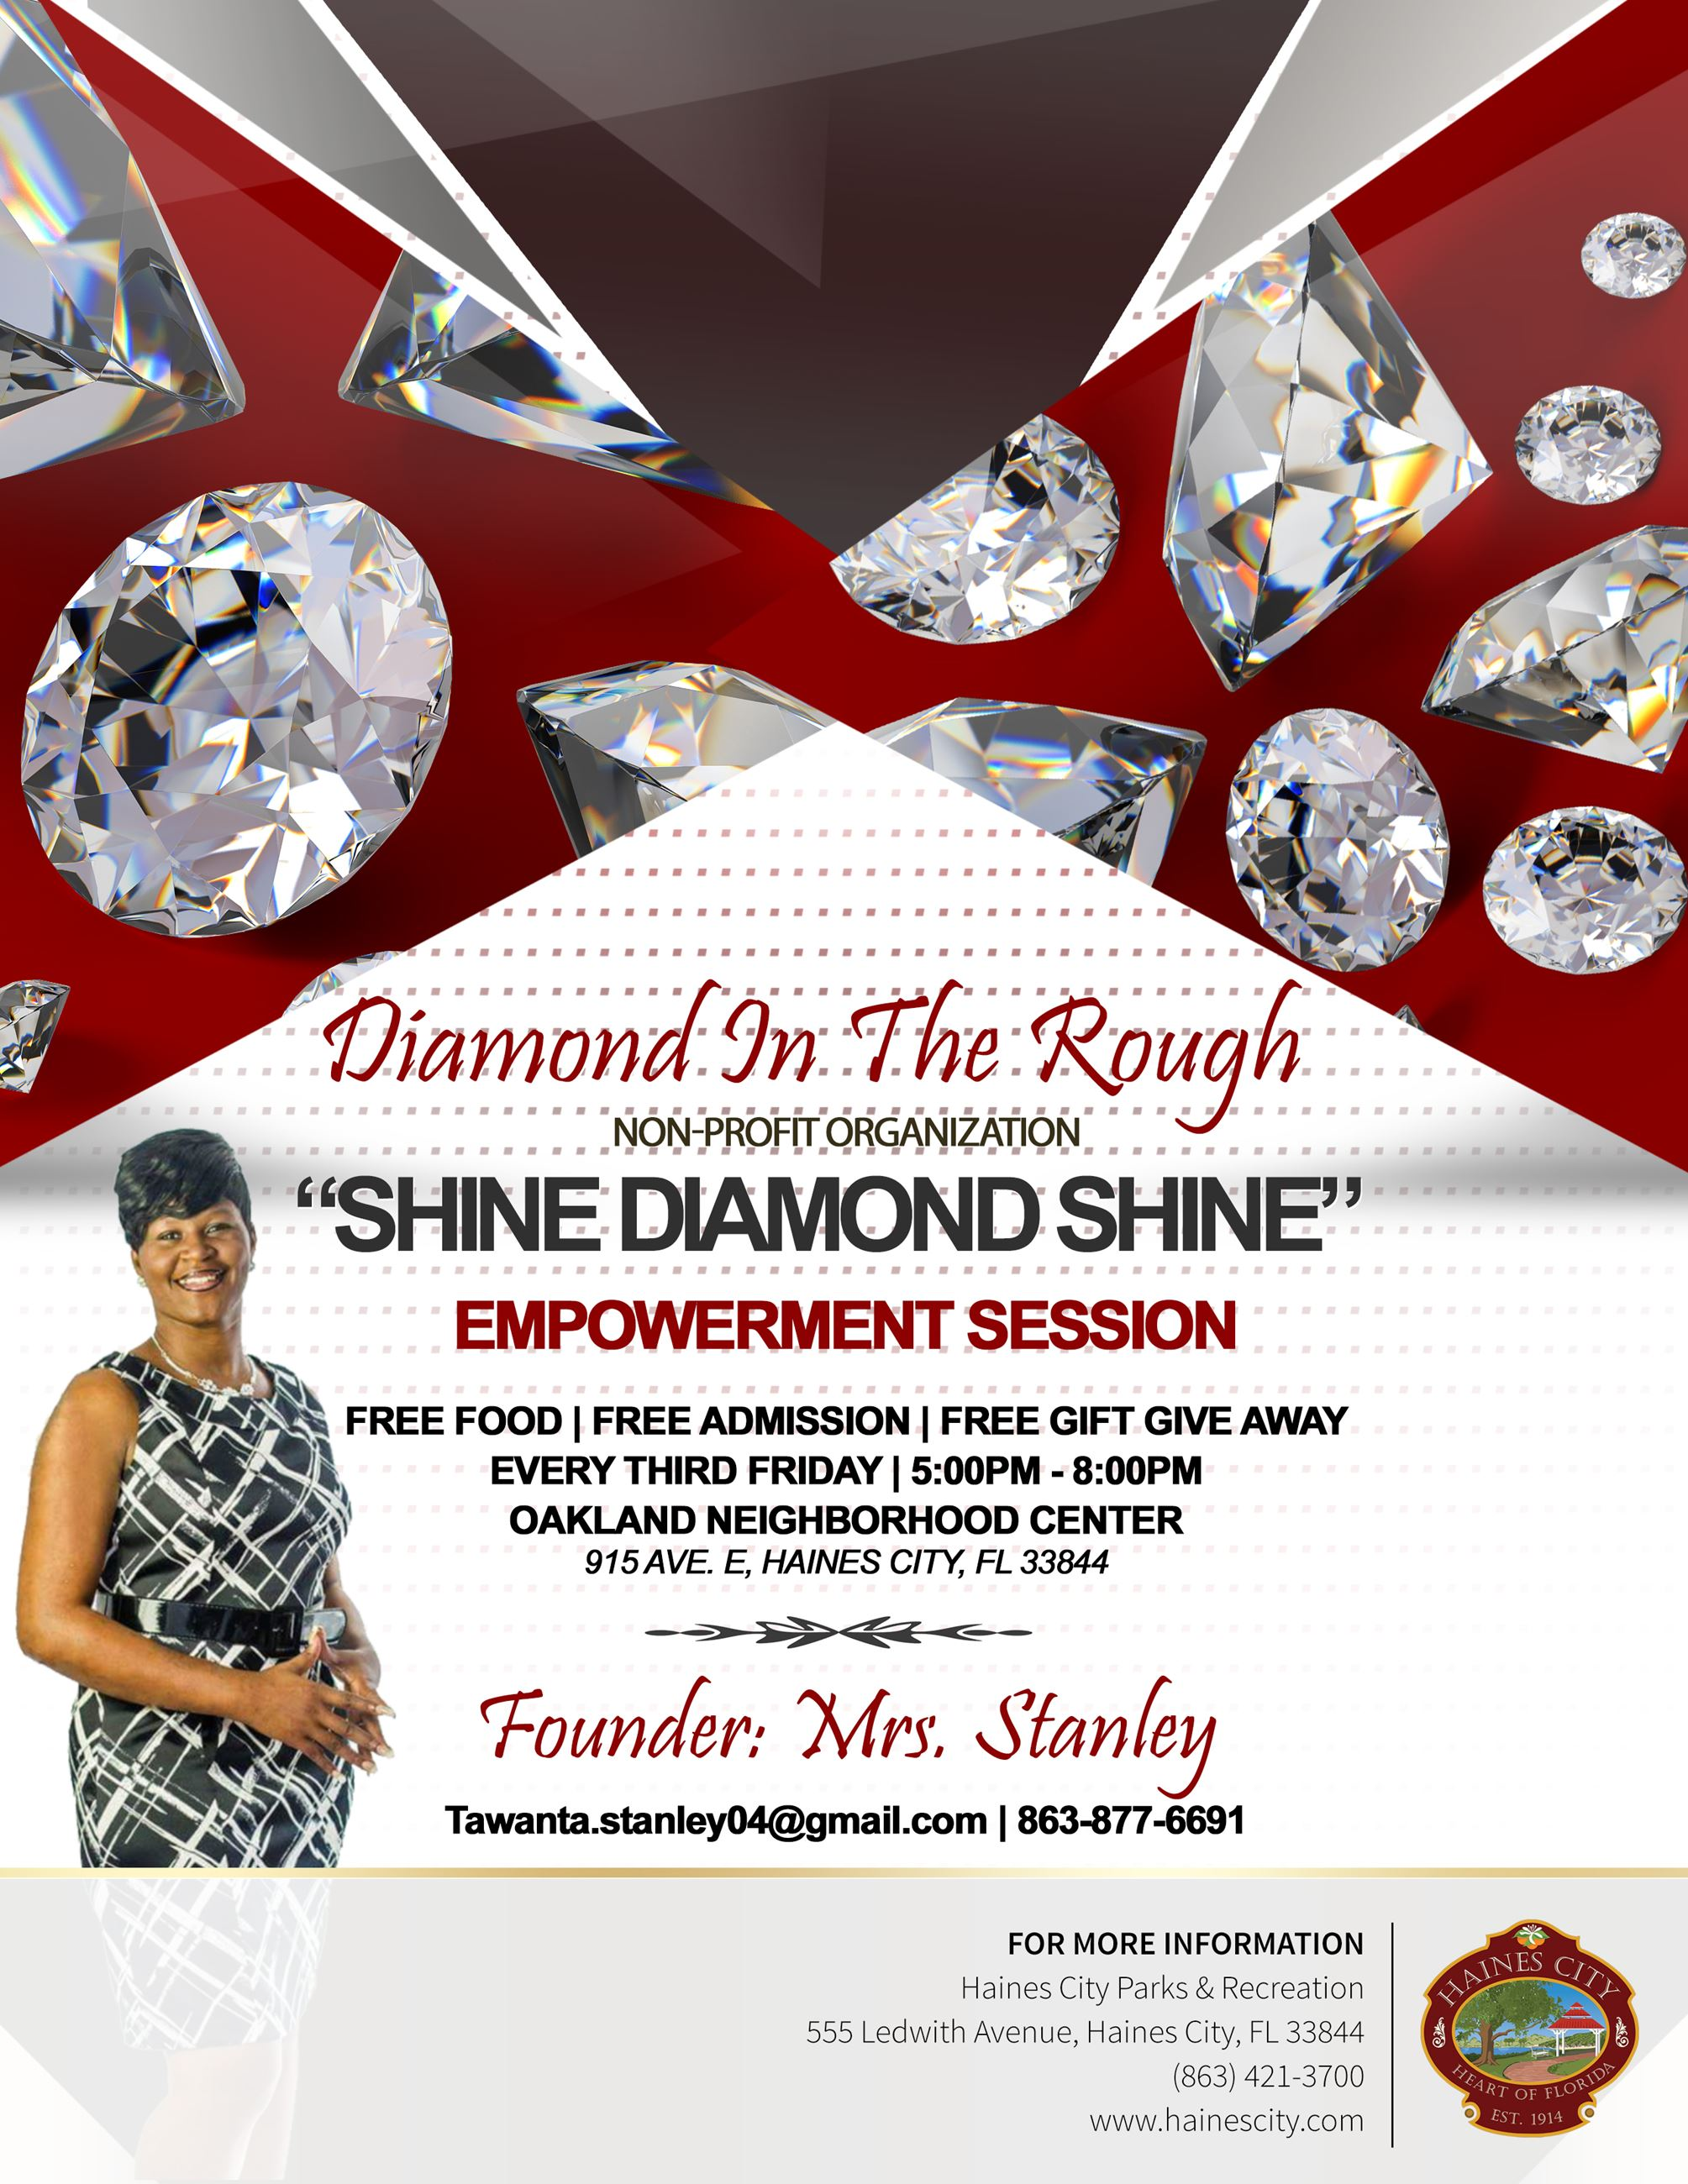 Diamond in the Rough (PDF IMAGE)